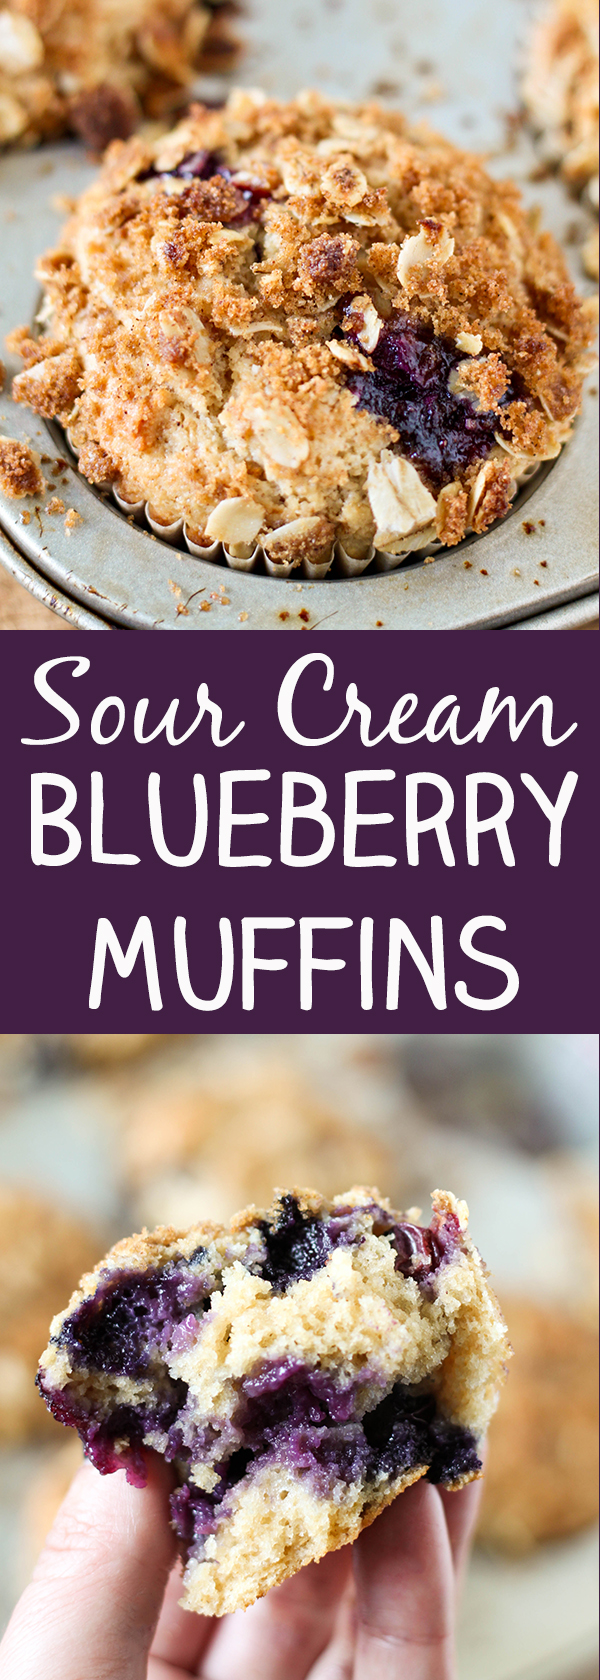 Sour Cream Blueberry Muffins - these wholesome muffins are packed with fresh blueberries, whole wheat flour, reduced fat sour cream and a crunchy oatmeal streusel topping.